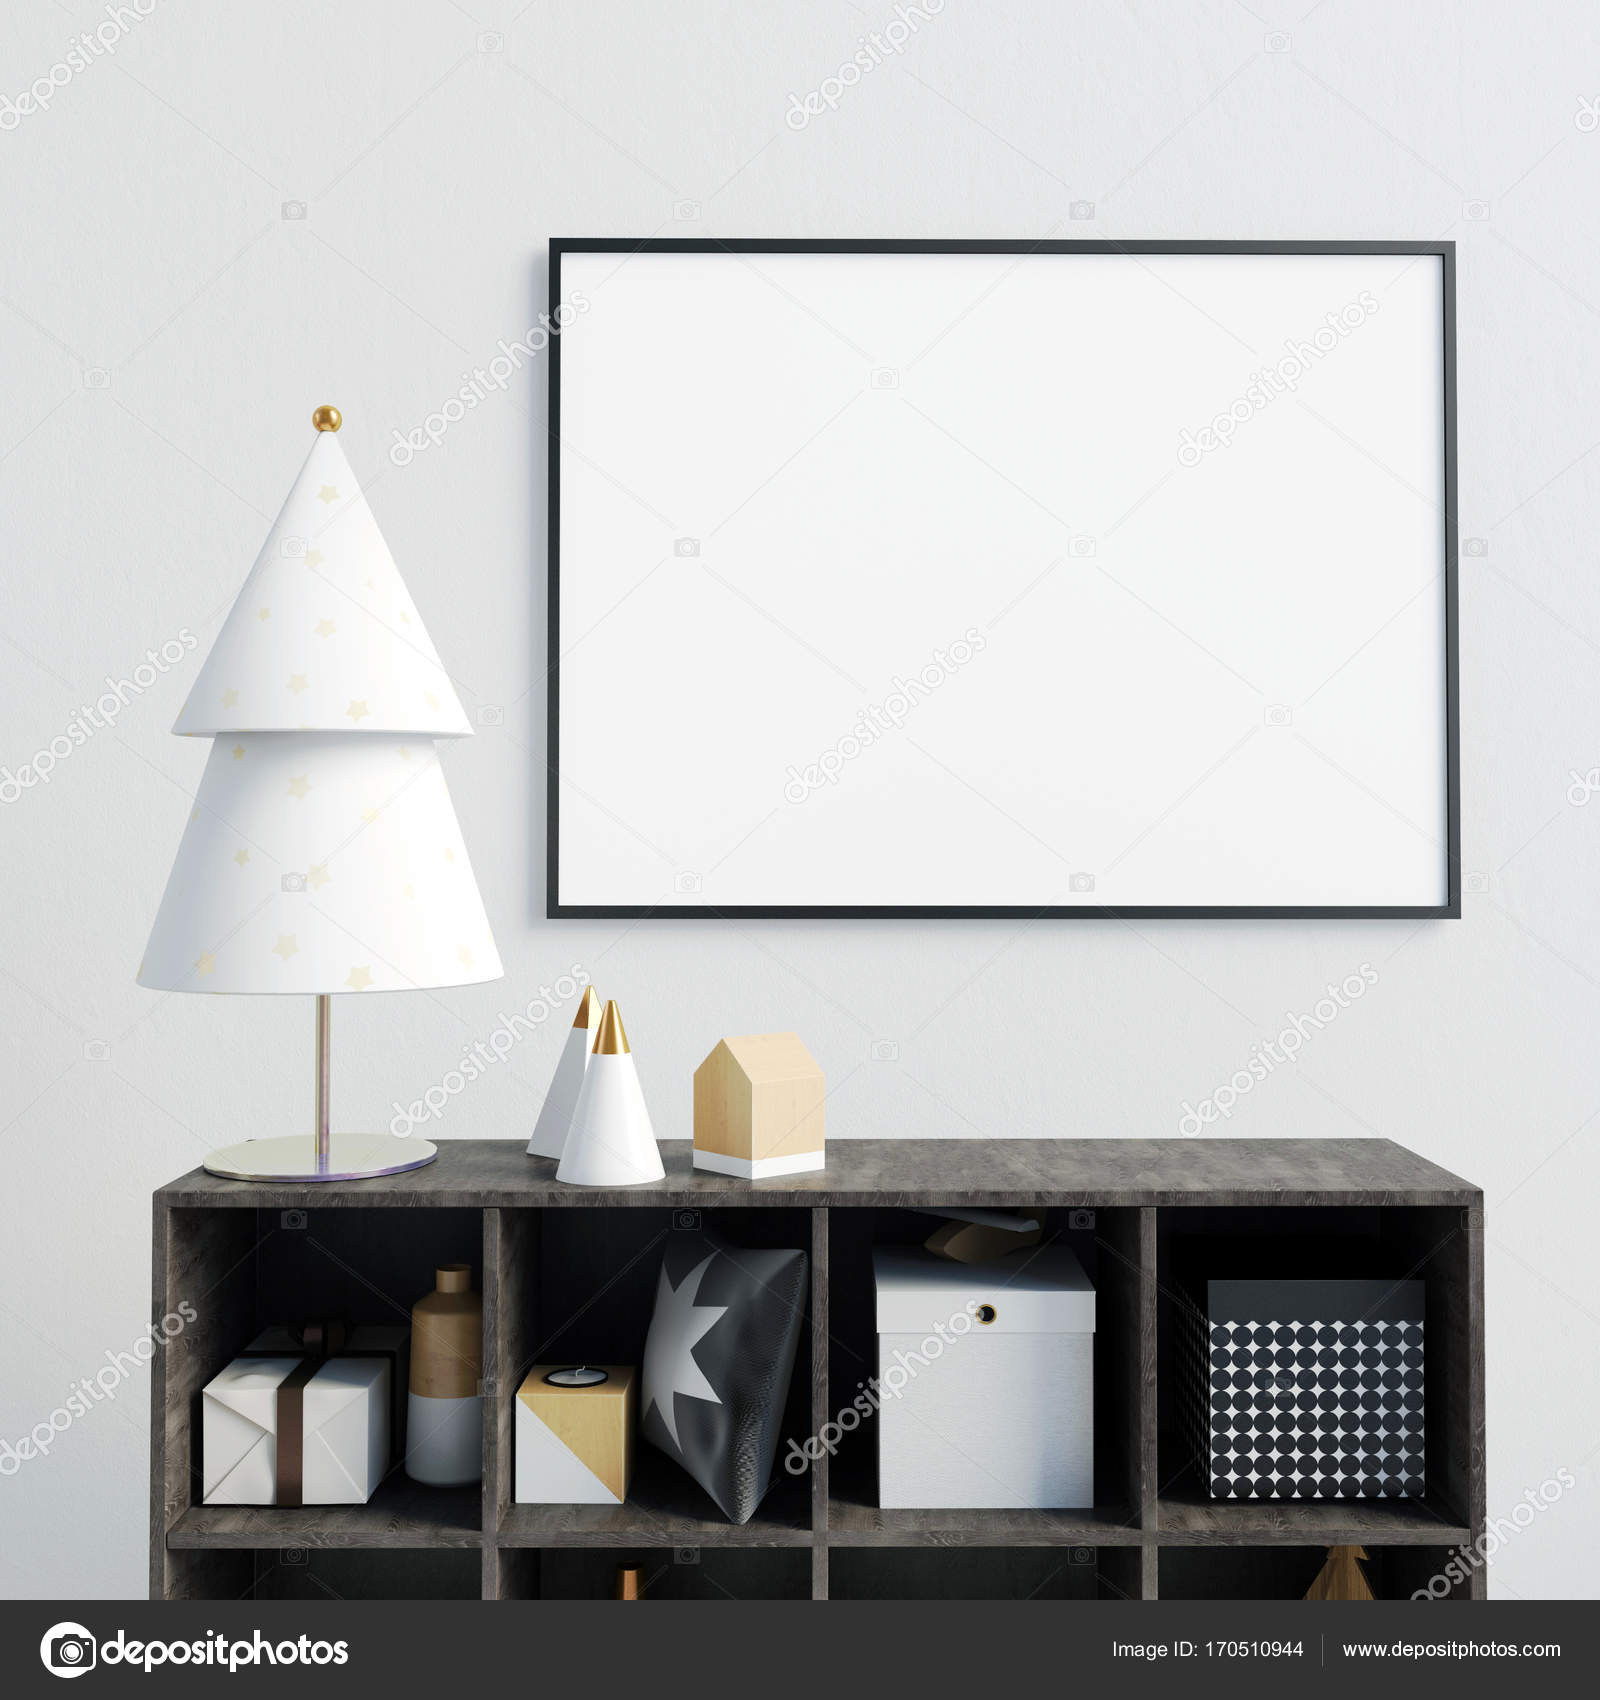 Modern Christmas interior with credenza, Scandinavian style. pos ...